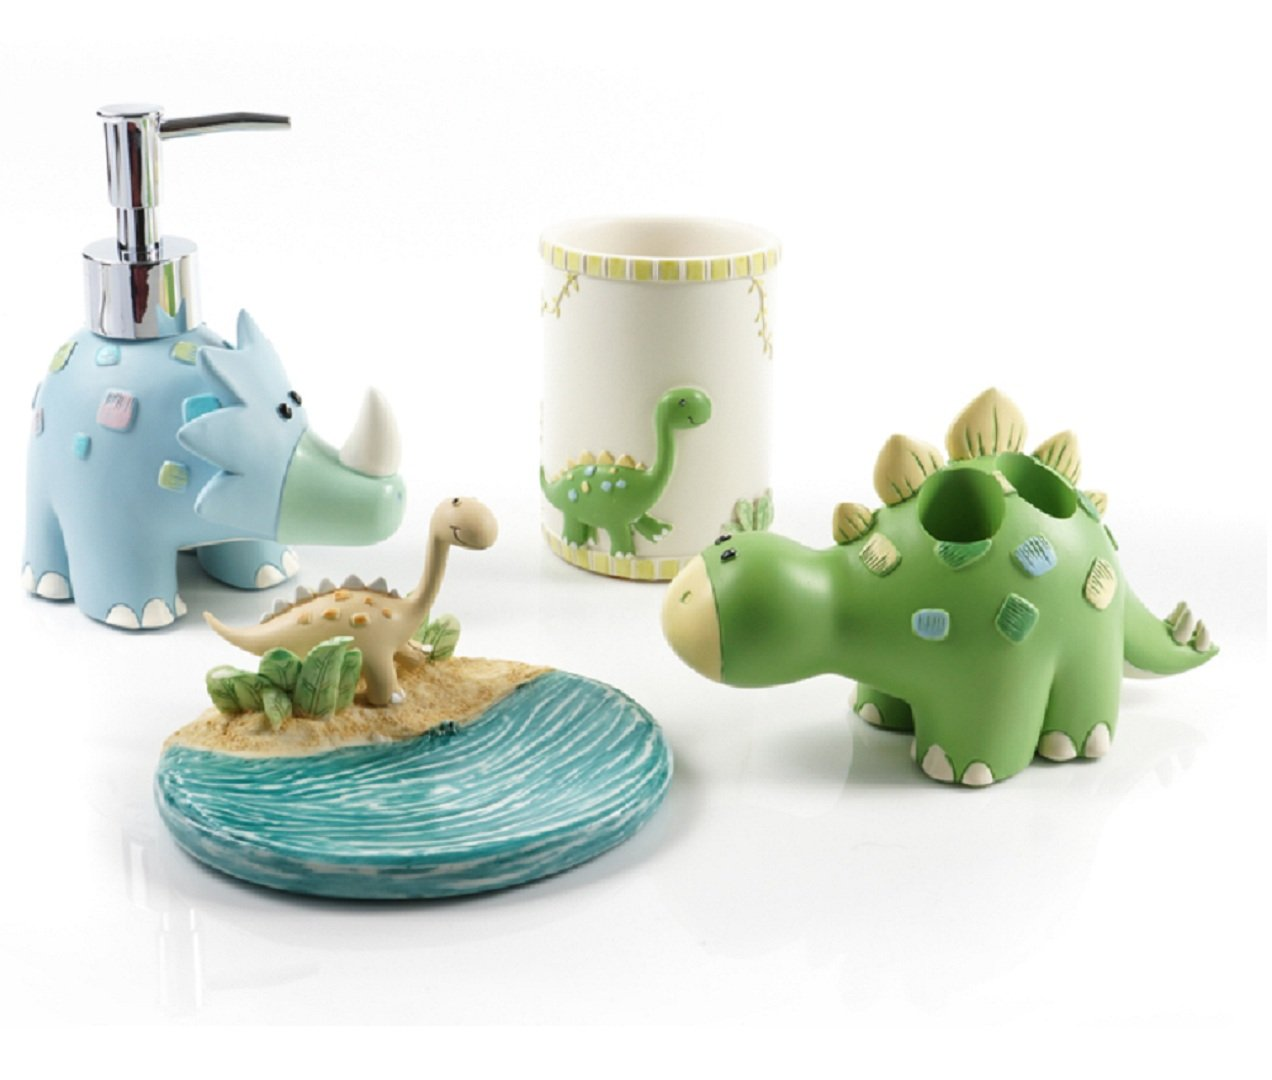 Gesteh Cartoon dianosaur Bath Accessory Set, Soap Dispenser Pump, Toothbrush Holder, Tumbler, Soap Dish (one Set)